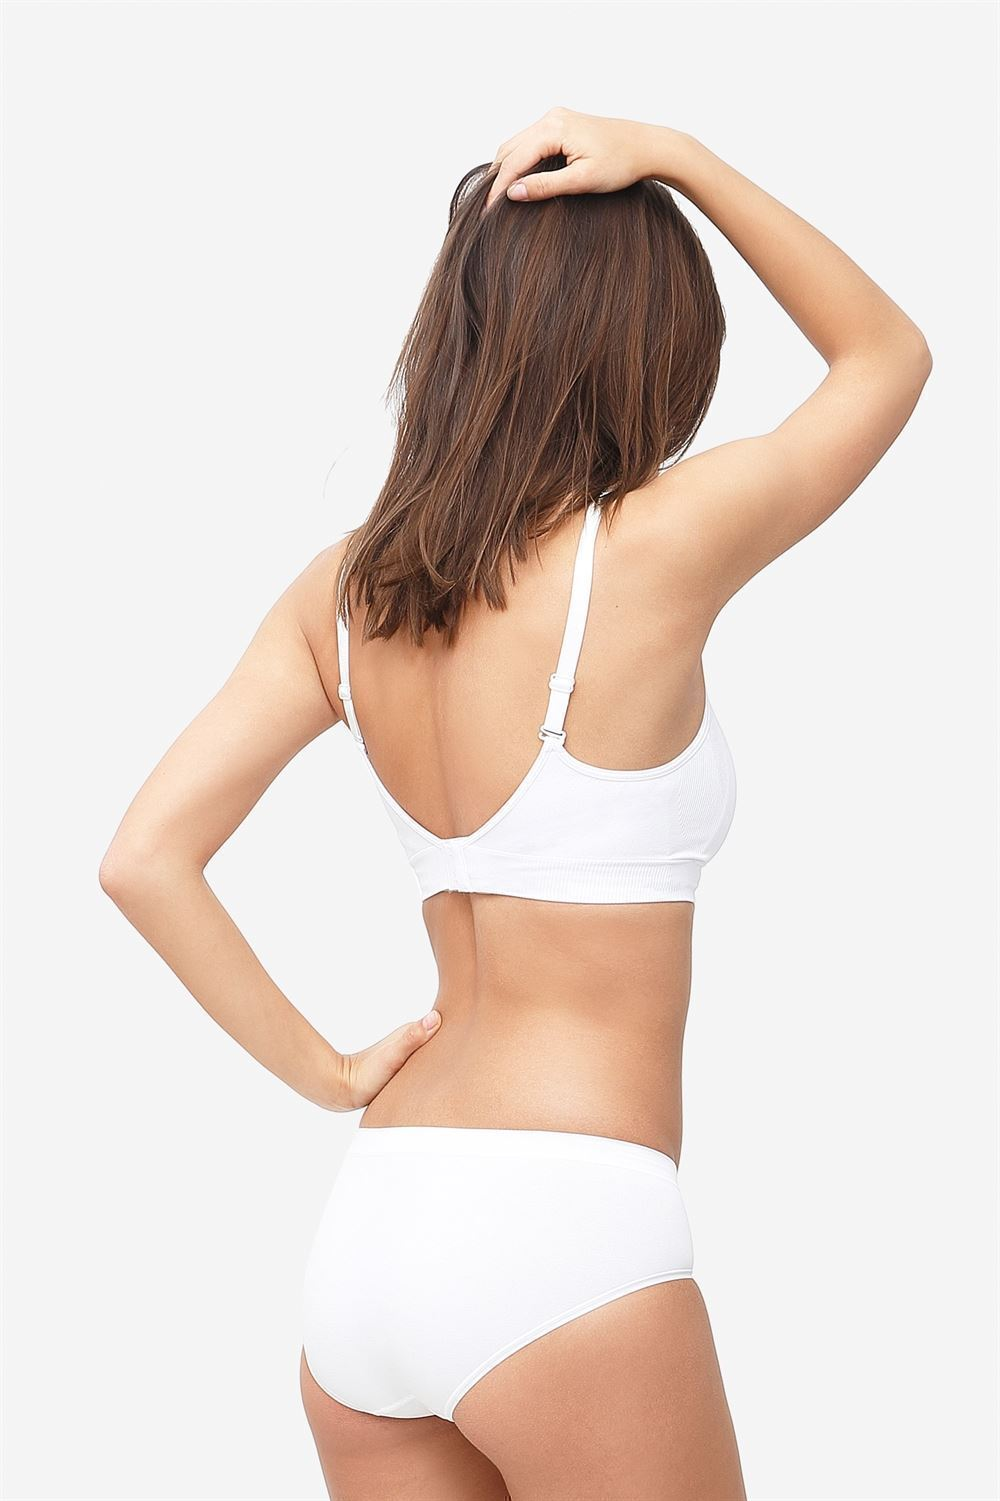 White nursing bra with click opening in bamboo fibers - Seen from behind